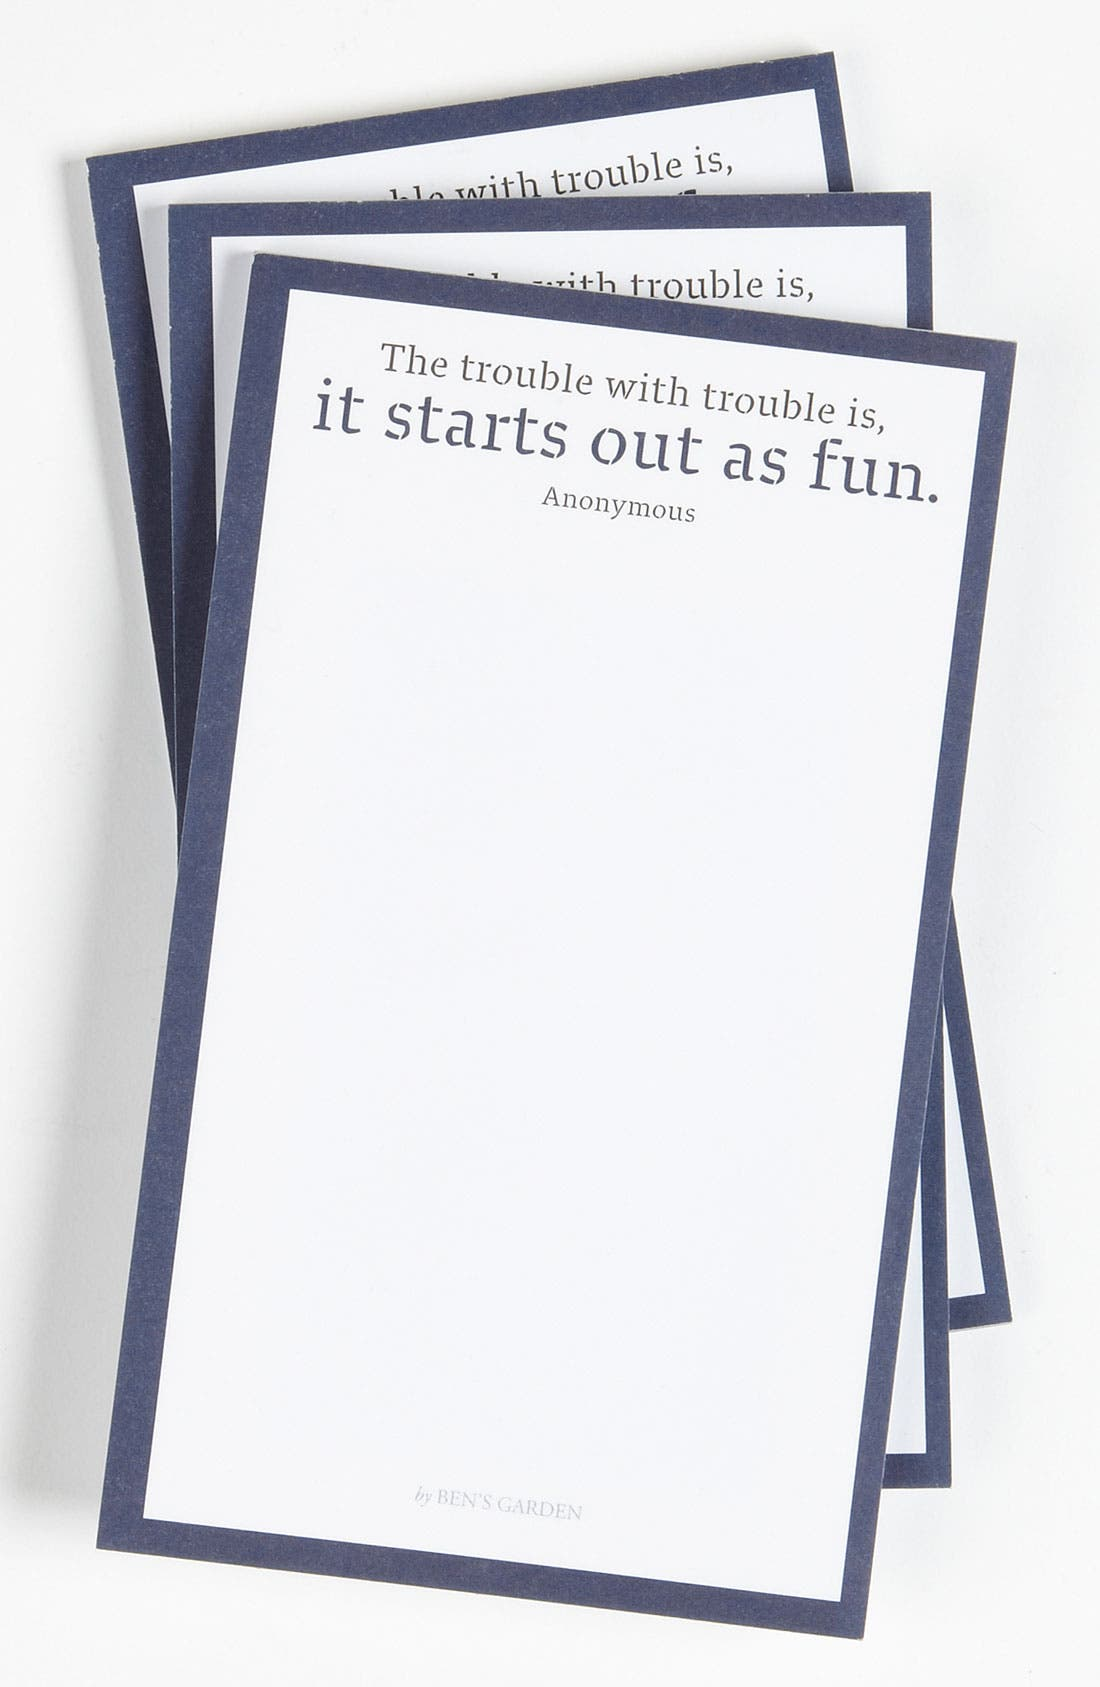 Alternate Image 1 Selected - Ben's Garden 'The Trouble With' Notepads (3-Pack)